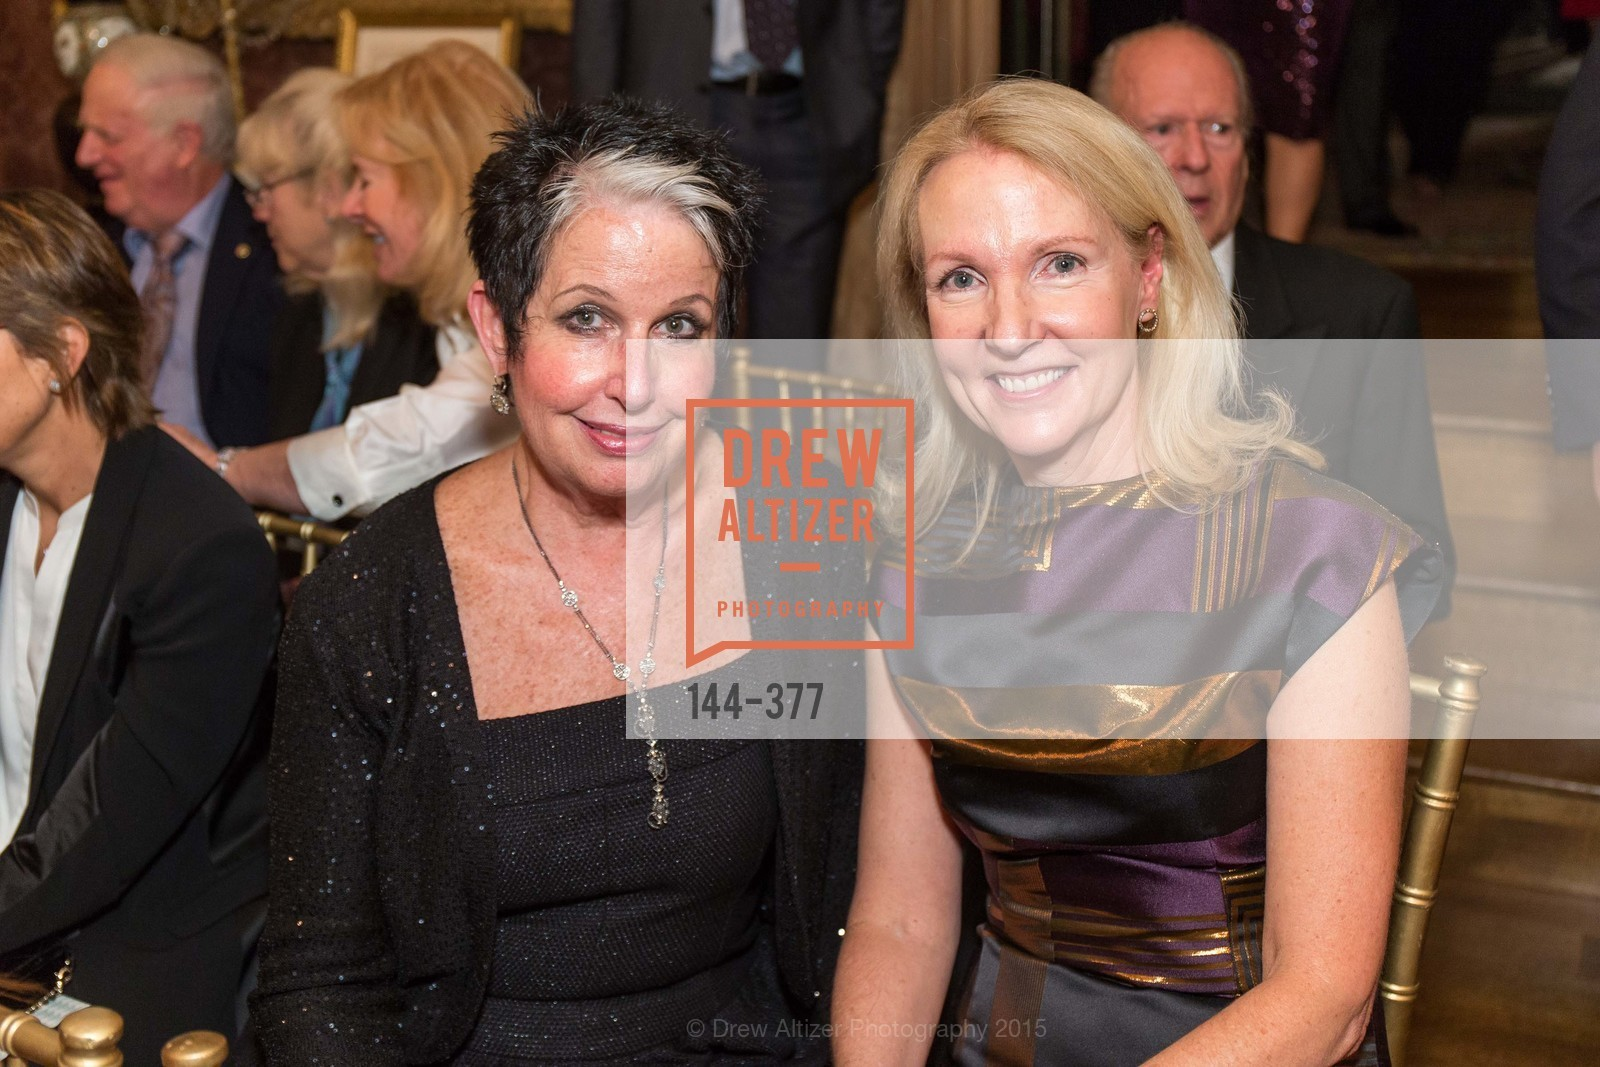 Karen Kubin, Ann Girard, Getty Host SF Conservatory of Music with Marilyn Horne, Private Residence, October 15th, 2015,Drew Altizer, Drew Altizer Photography, full-service agency, private events, San Francisco photographer, photographer california